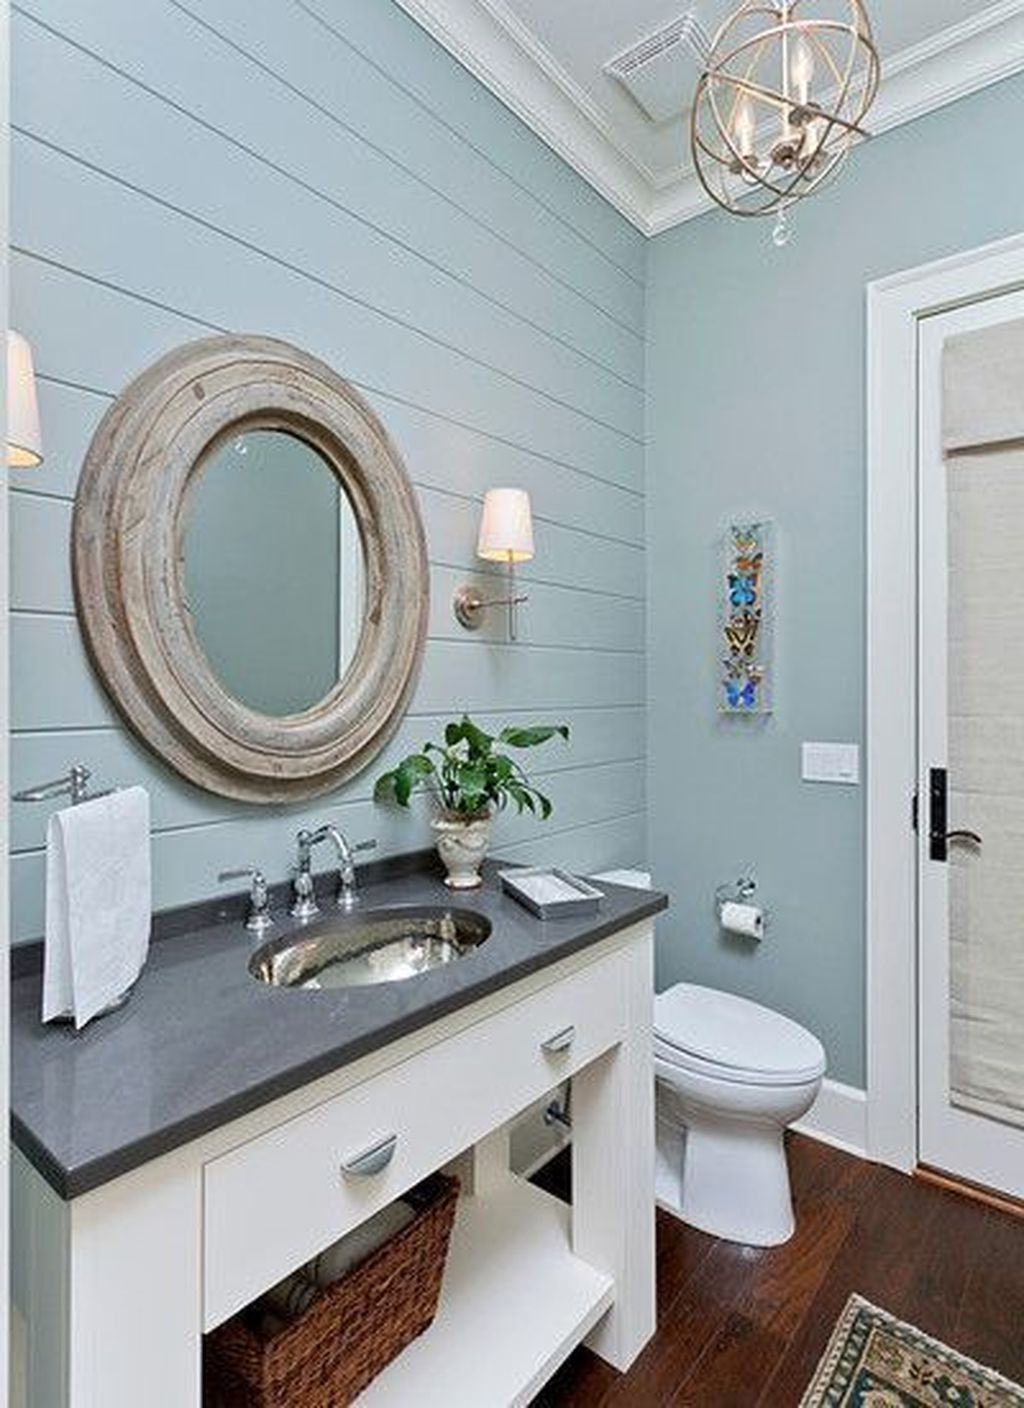 Adorable Modern Farmhouse Bathroom Remodel Ideas 39